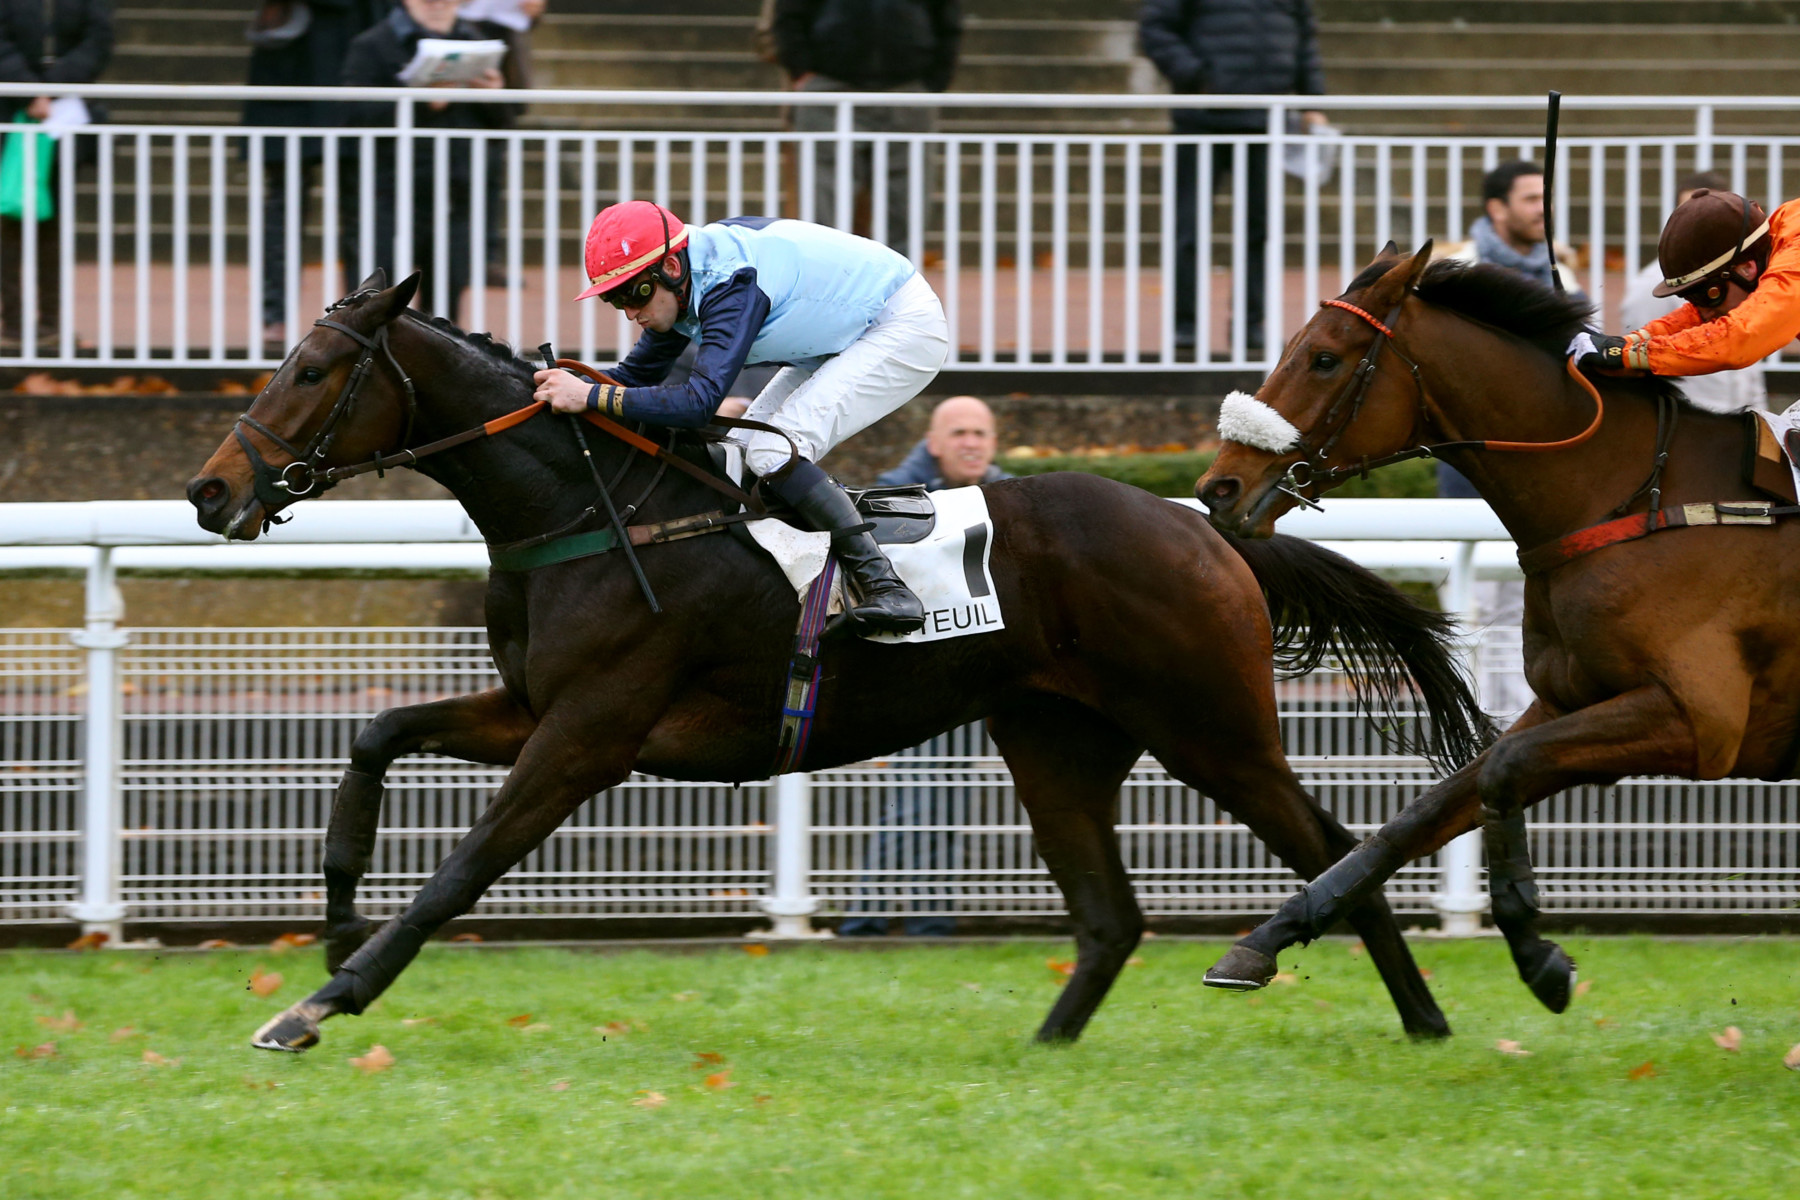 PRIX DE BEAUGENCY - Discret et Royal en pensant au steeple